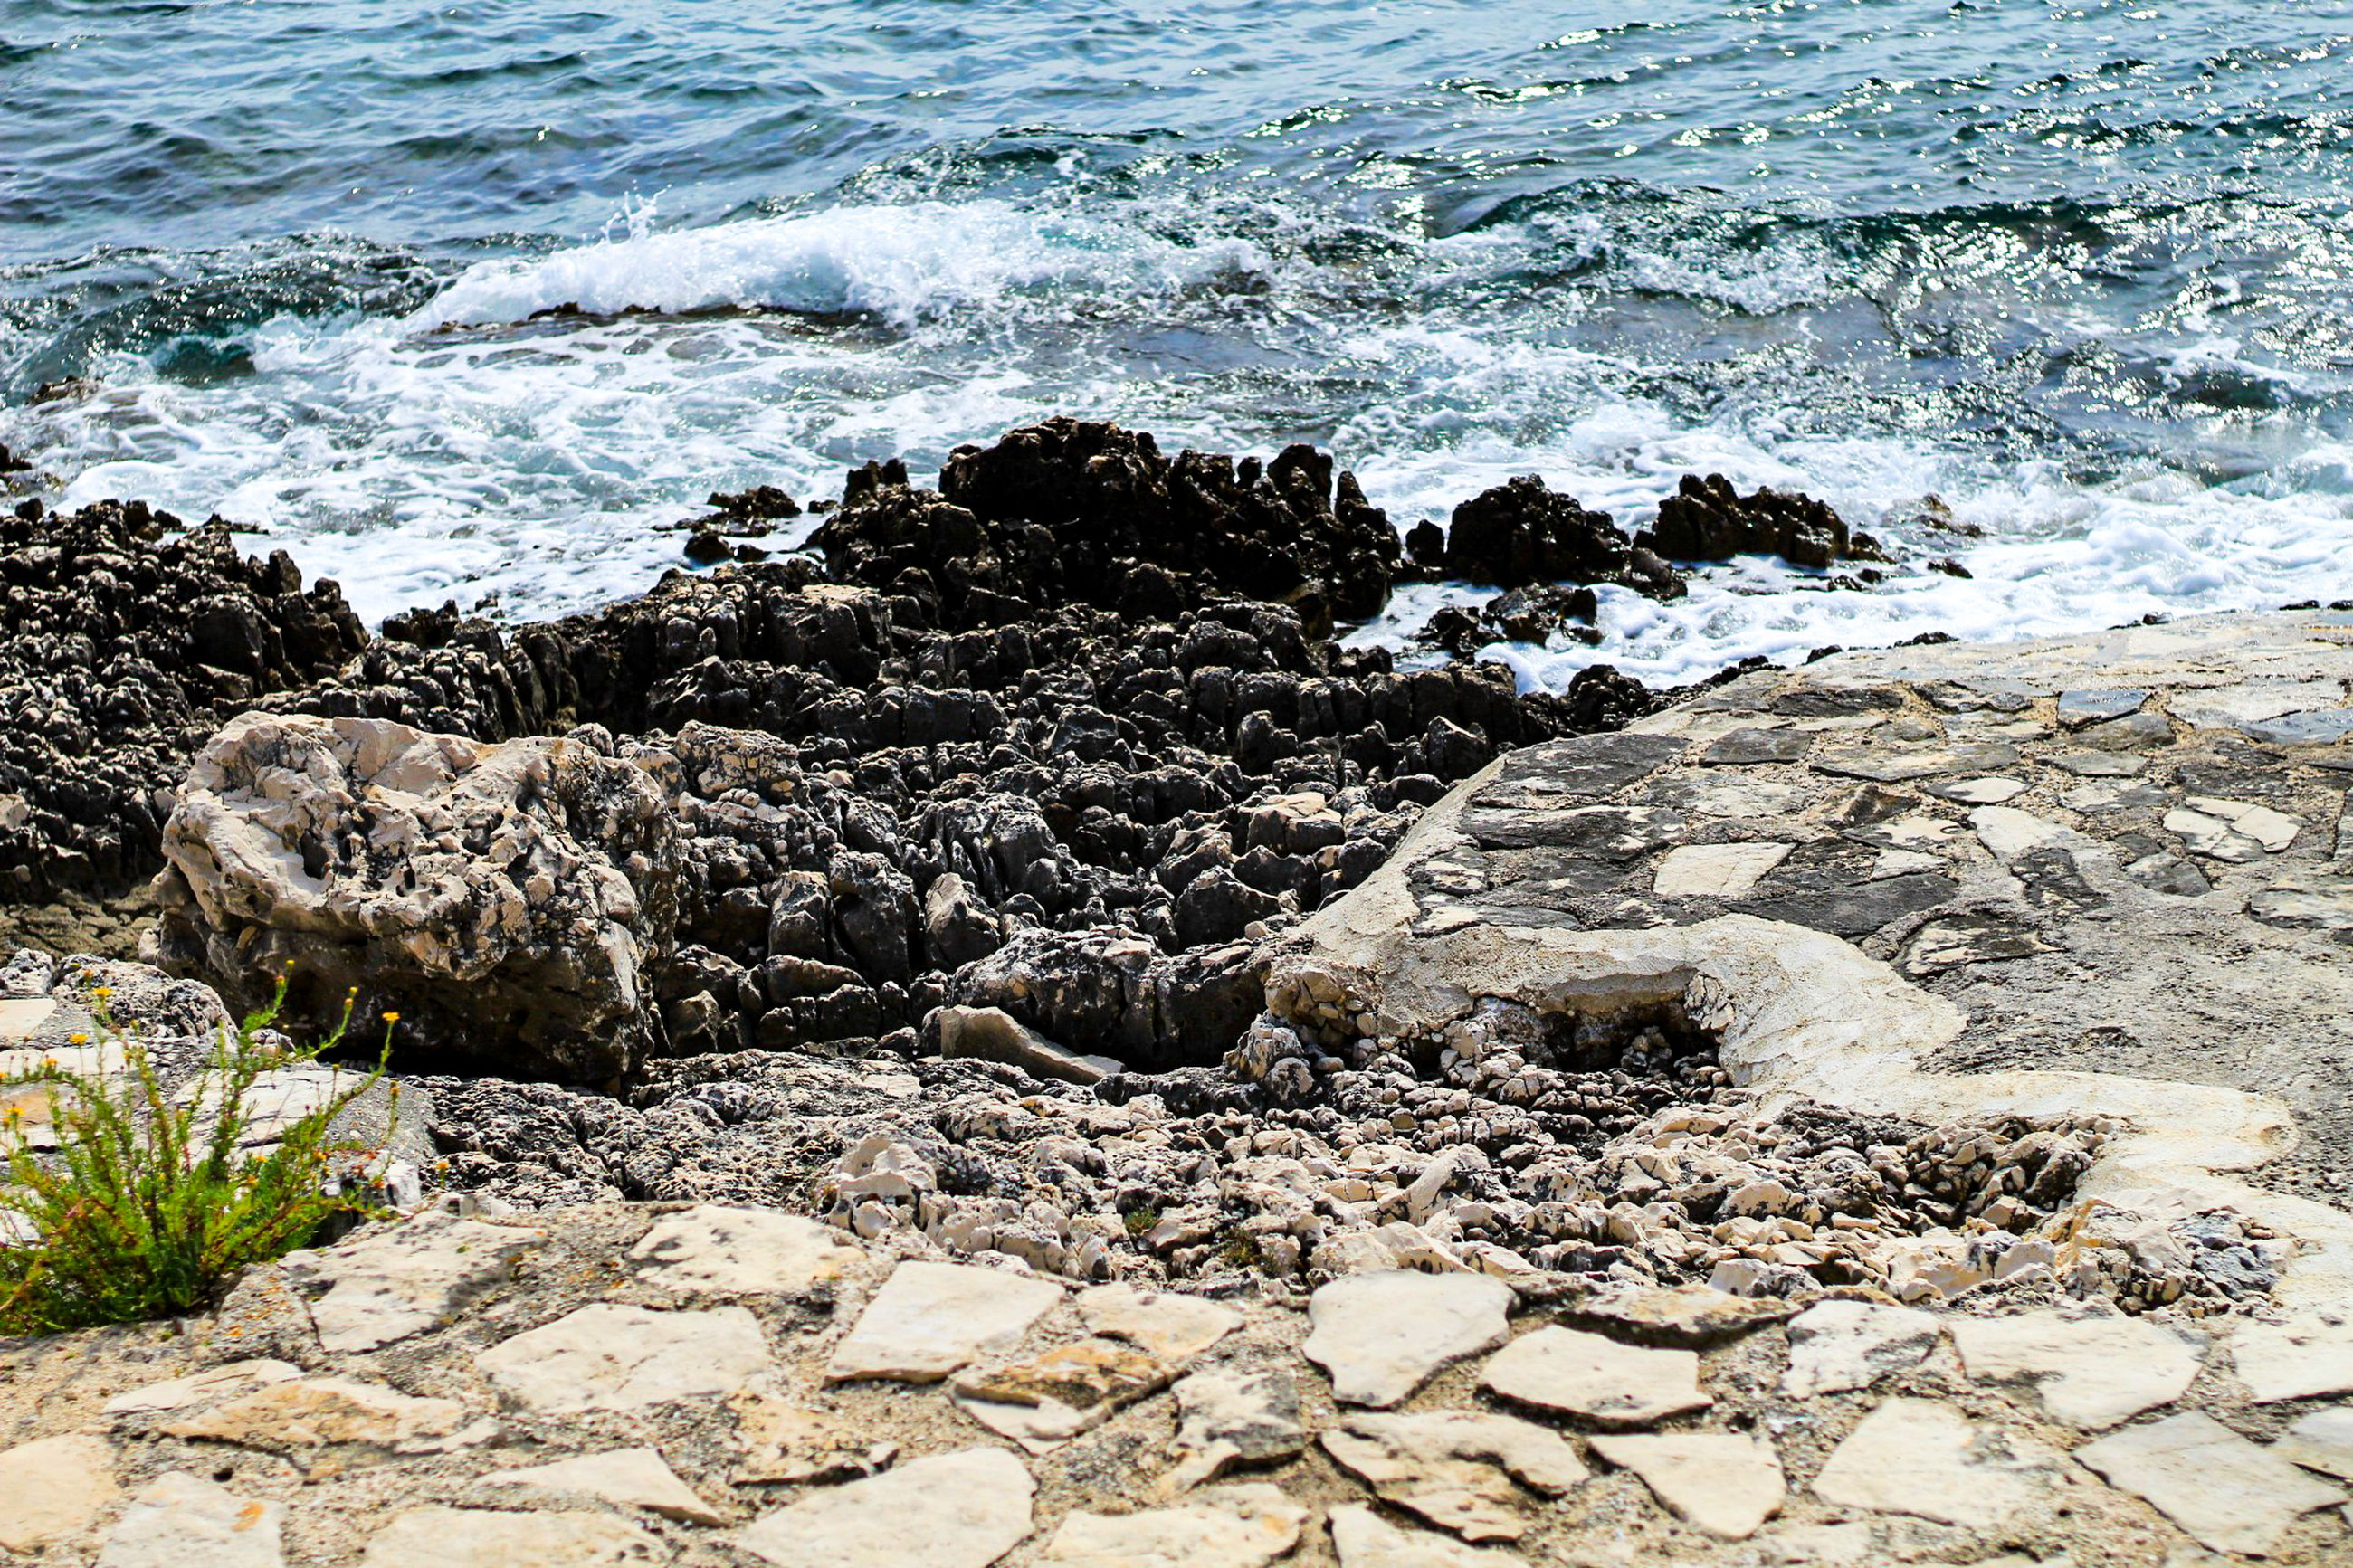 sea, water, rock, solid, rock - object, beach, land, nature, day, wave, no people, motion, sport, outdoors, aquatic sport, beauty in nature, splashing, reptile